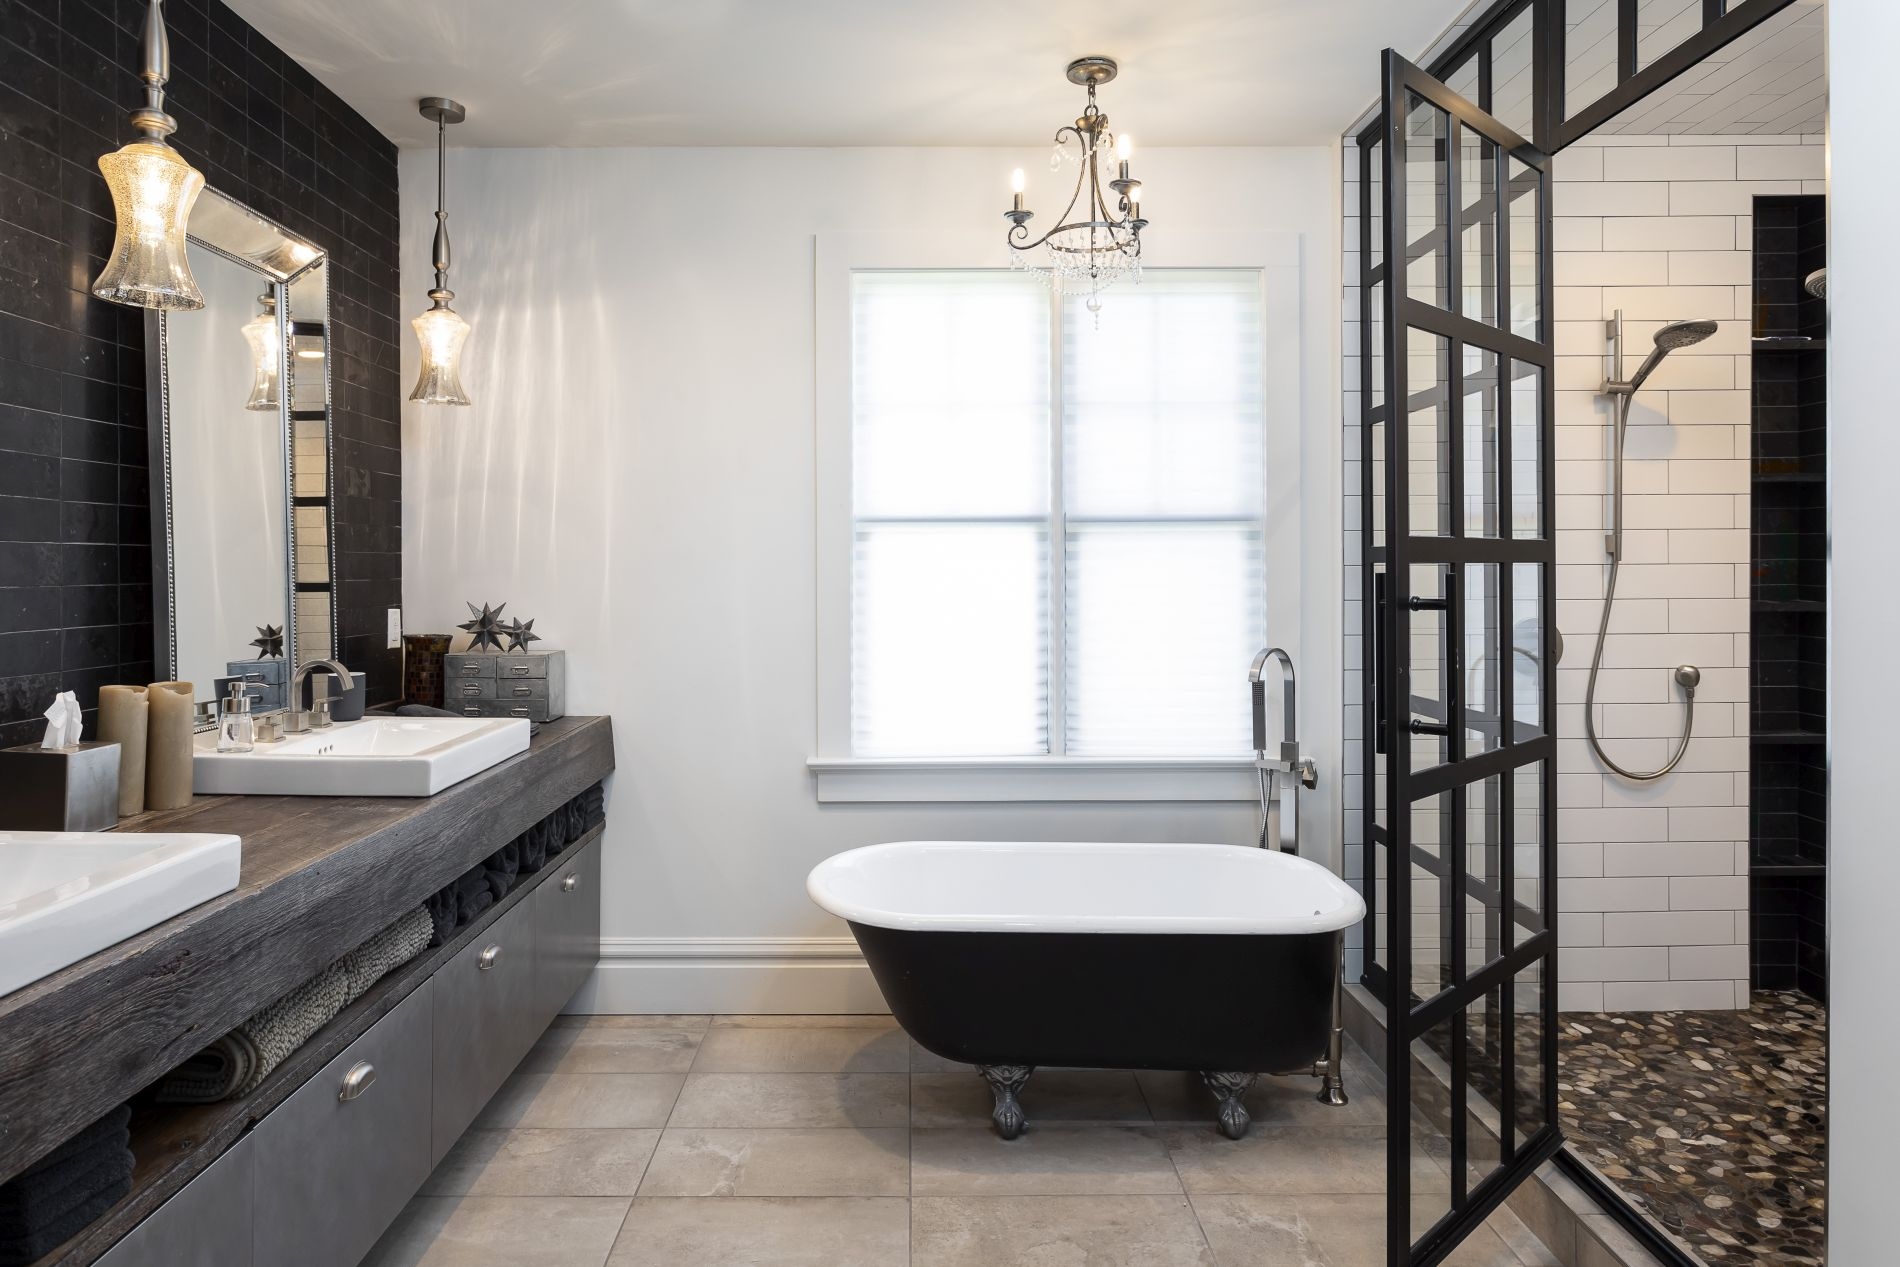 How Much Do Bathroom Renovations Cost, Renovate Bathroom Cost